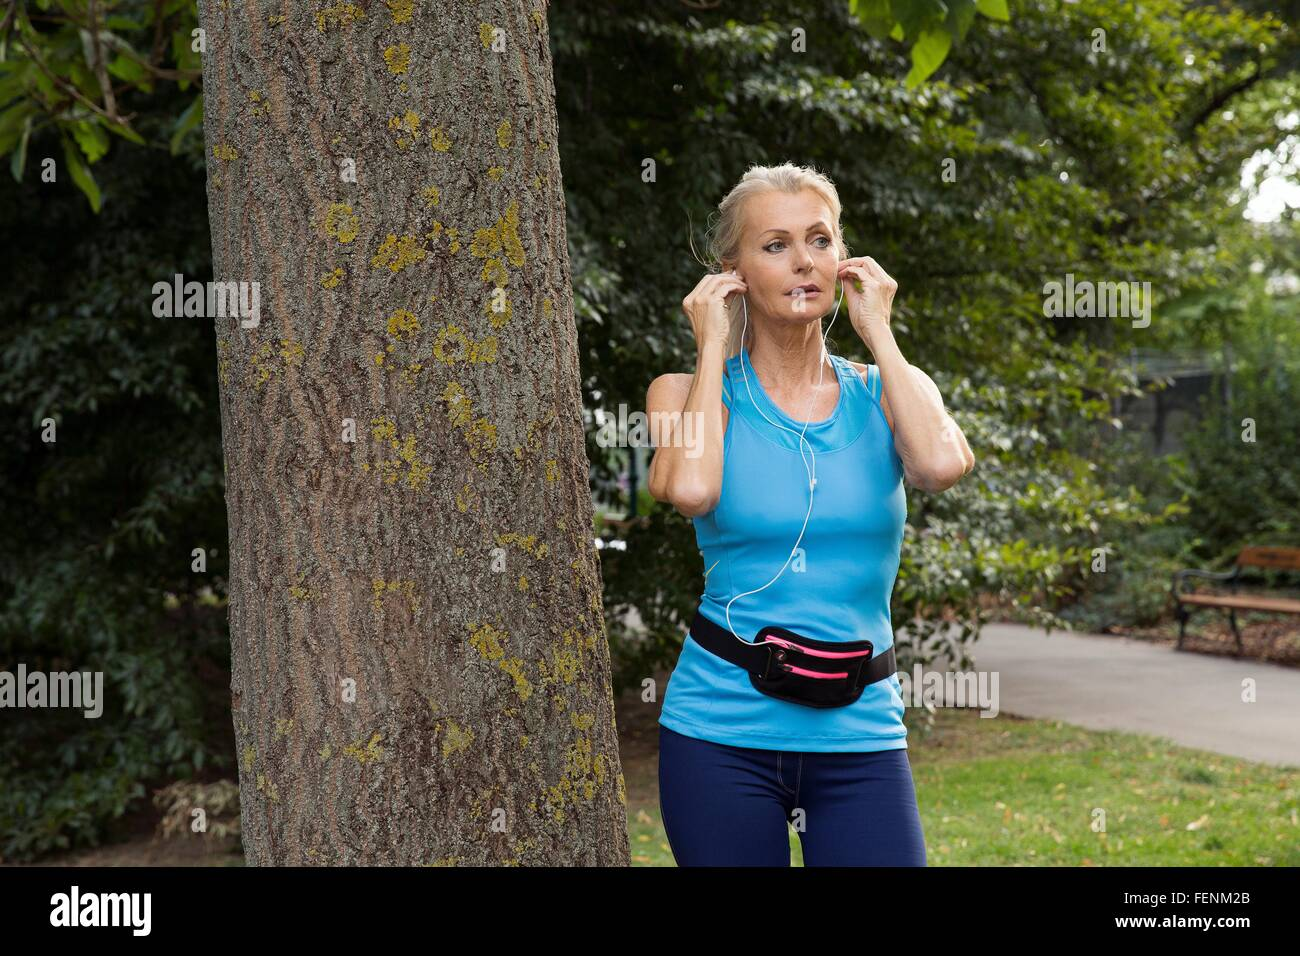 Mature woman adjusting earphones whilst training in park - Stock Image